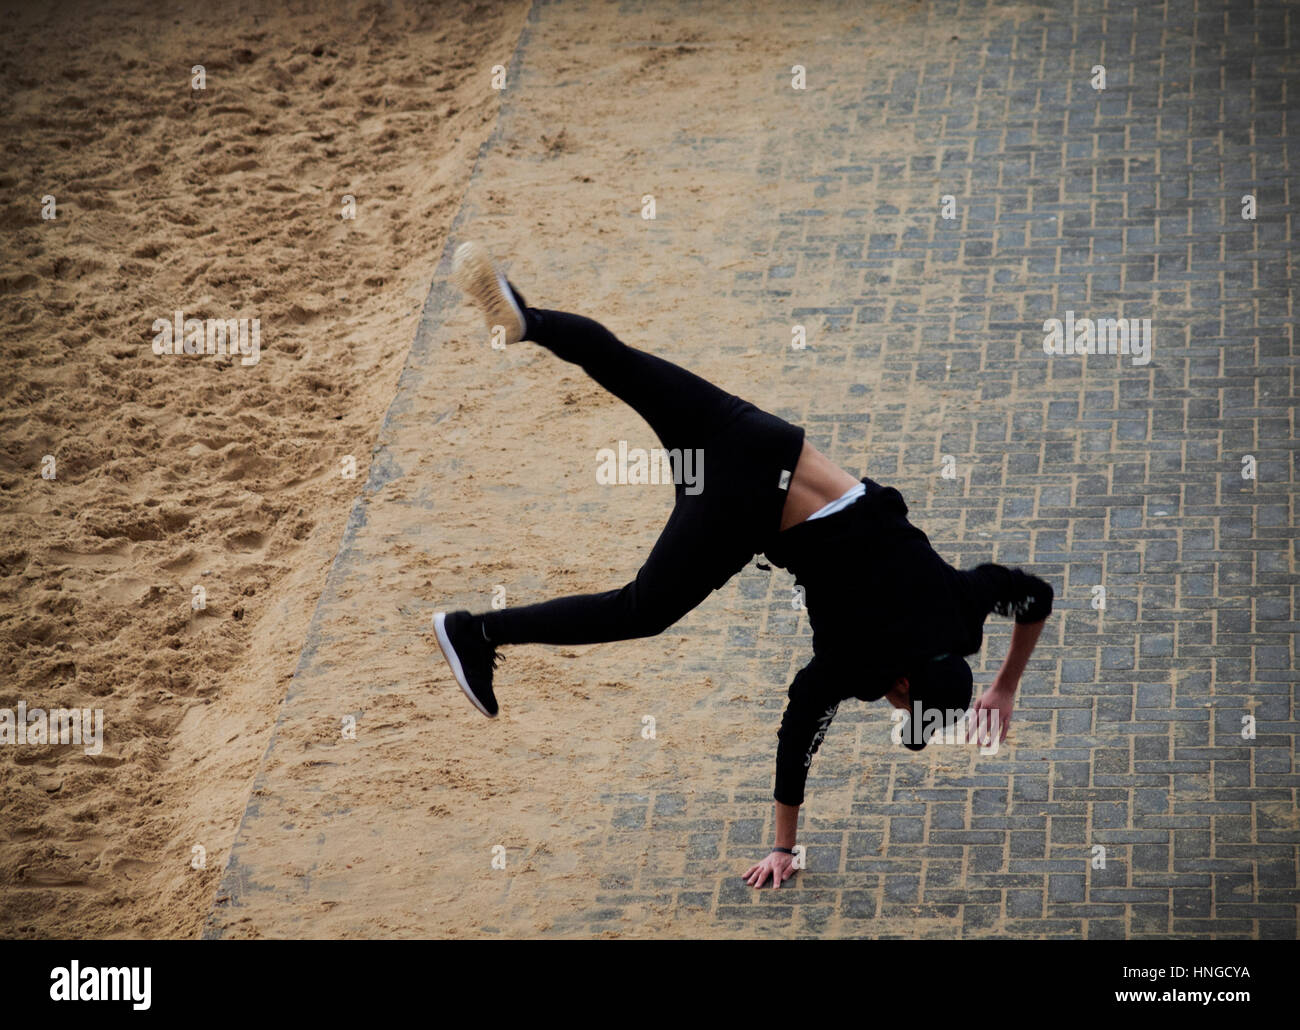 A man in black practices parkour on Brighton seafront - Stock Image